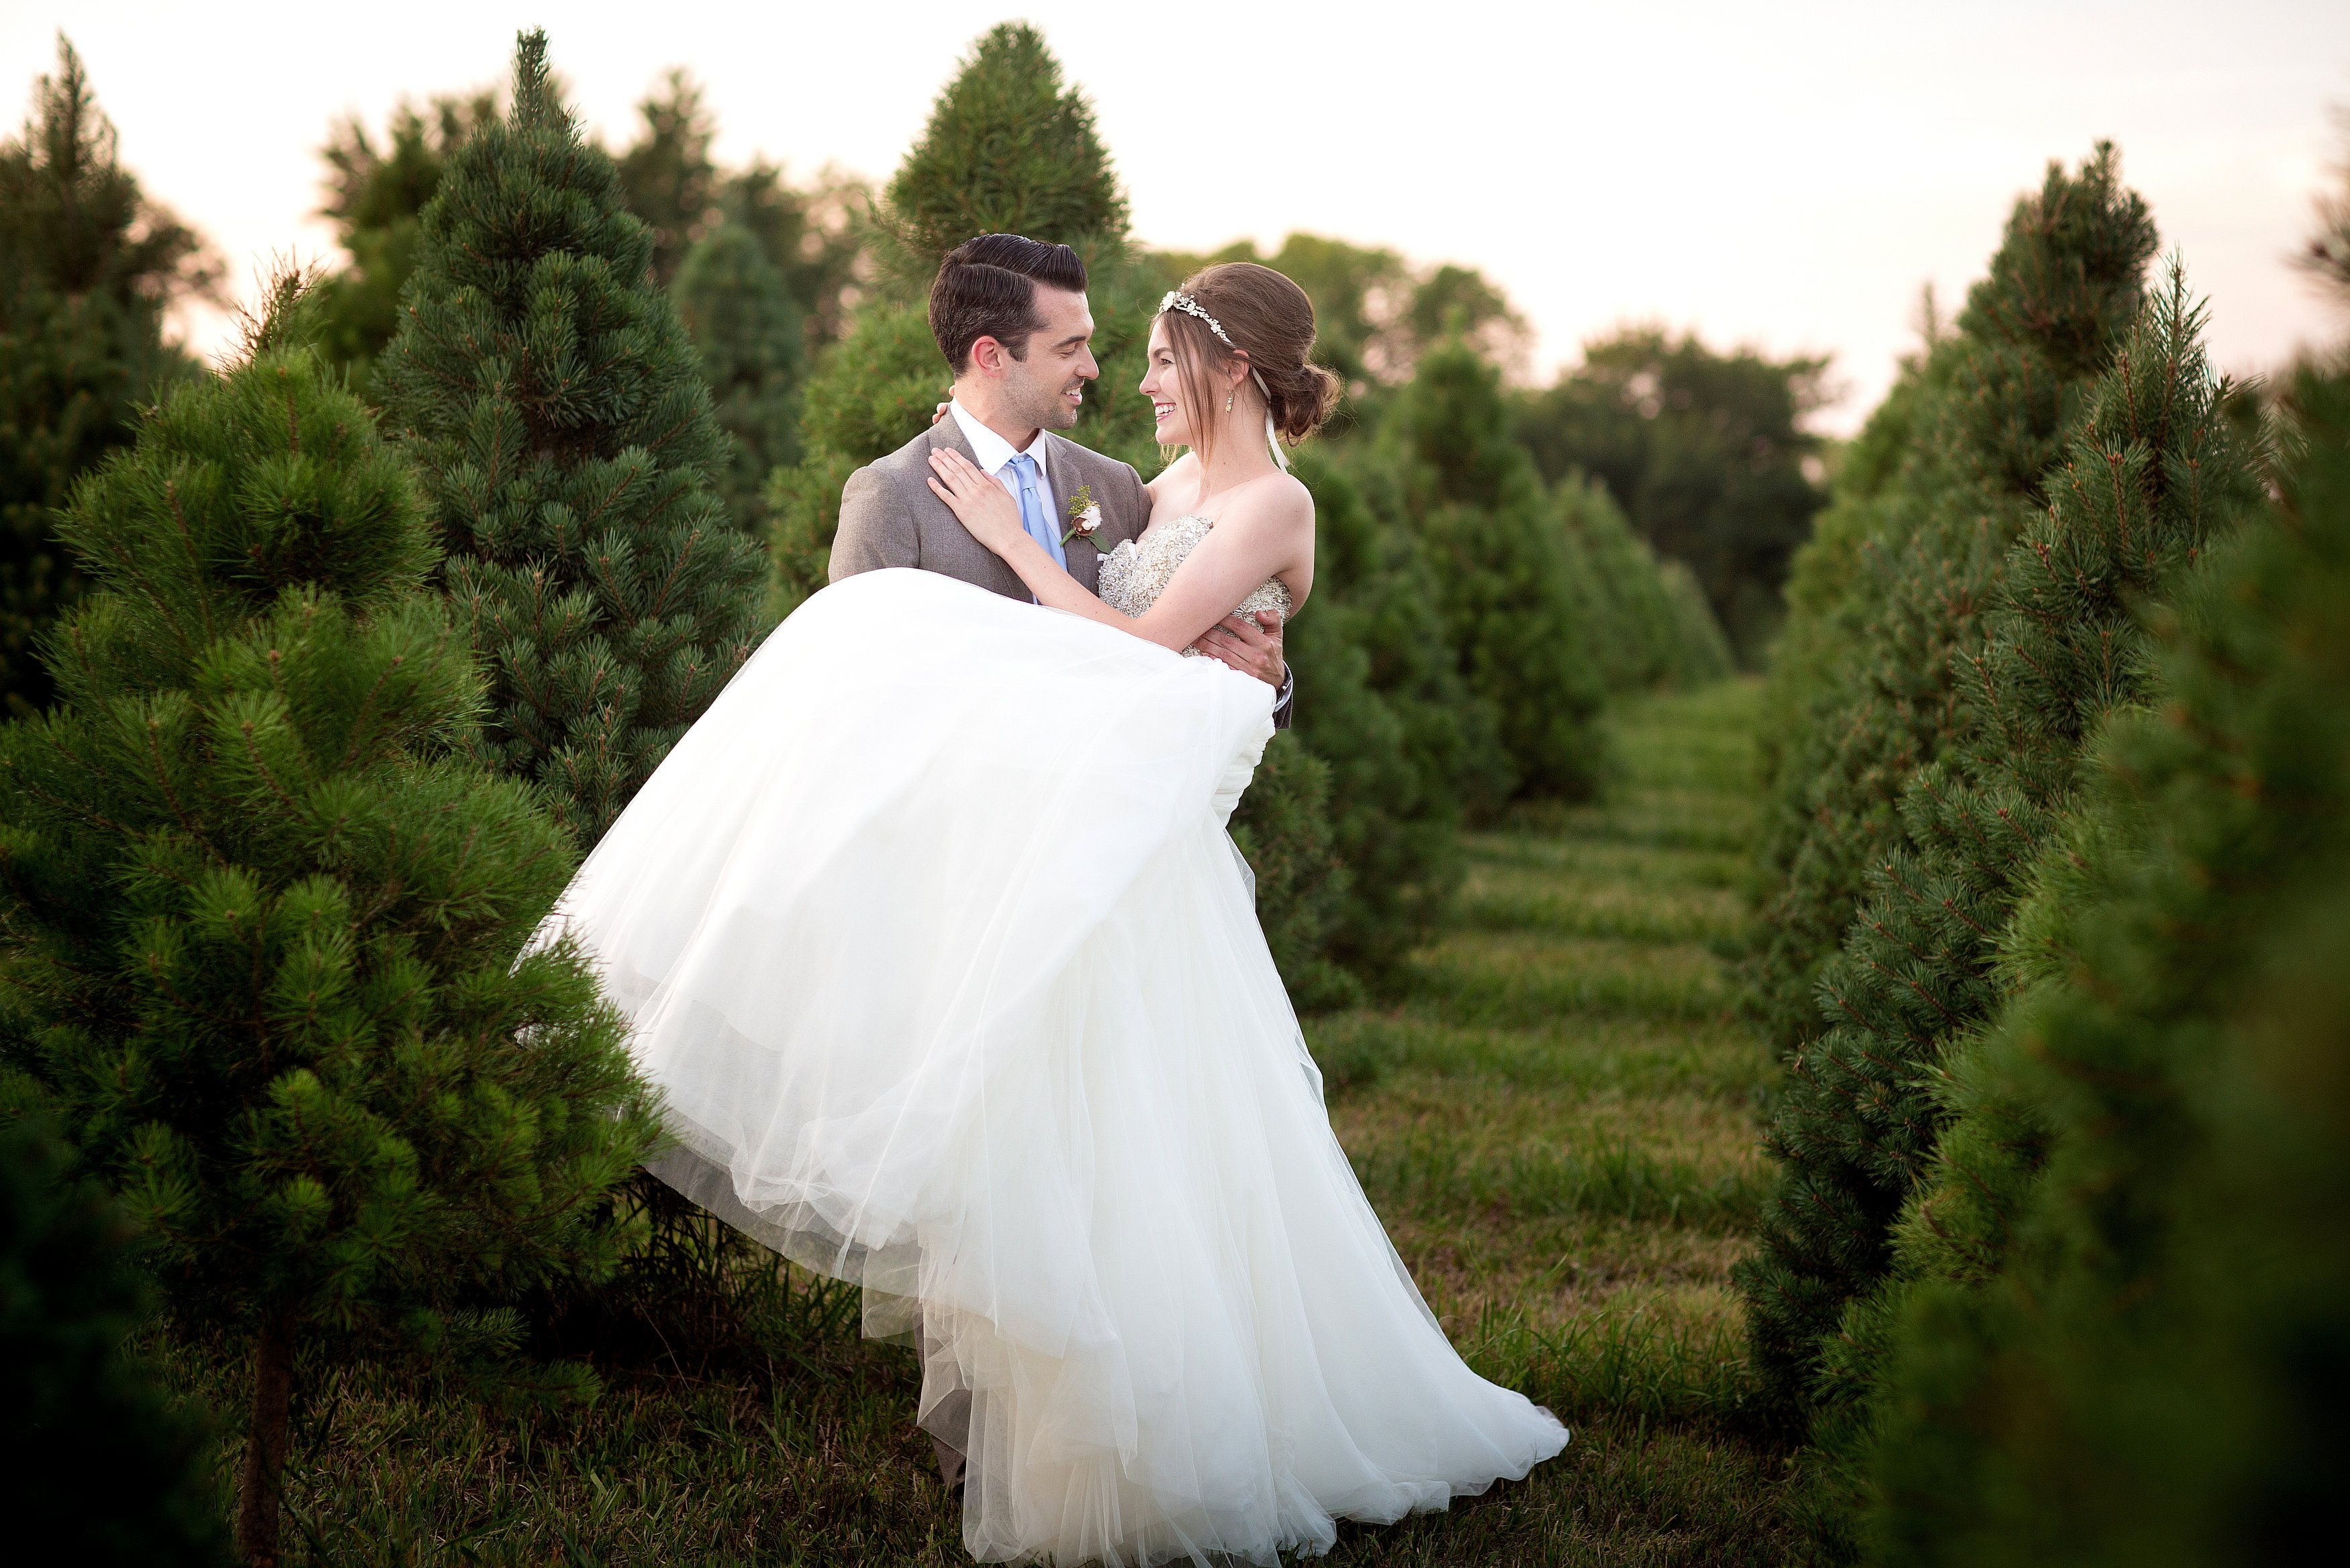 Winter Wedding Archives Wed Kc Kansas City Wedding Experts Christmas Tree Farm Photo Shoot Kansas City Wedding Wedding